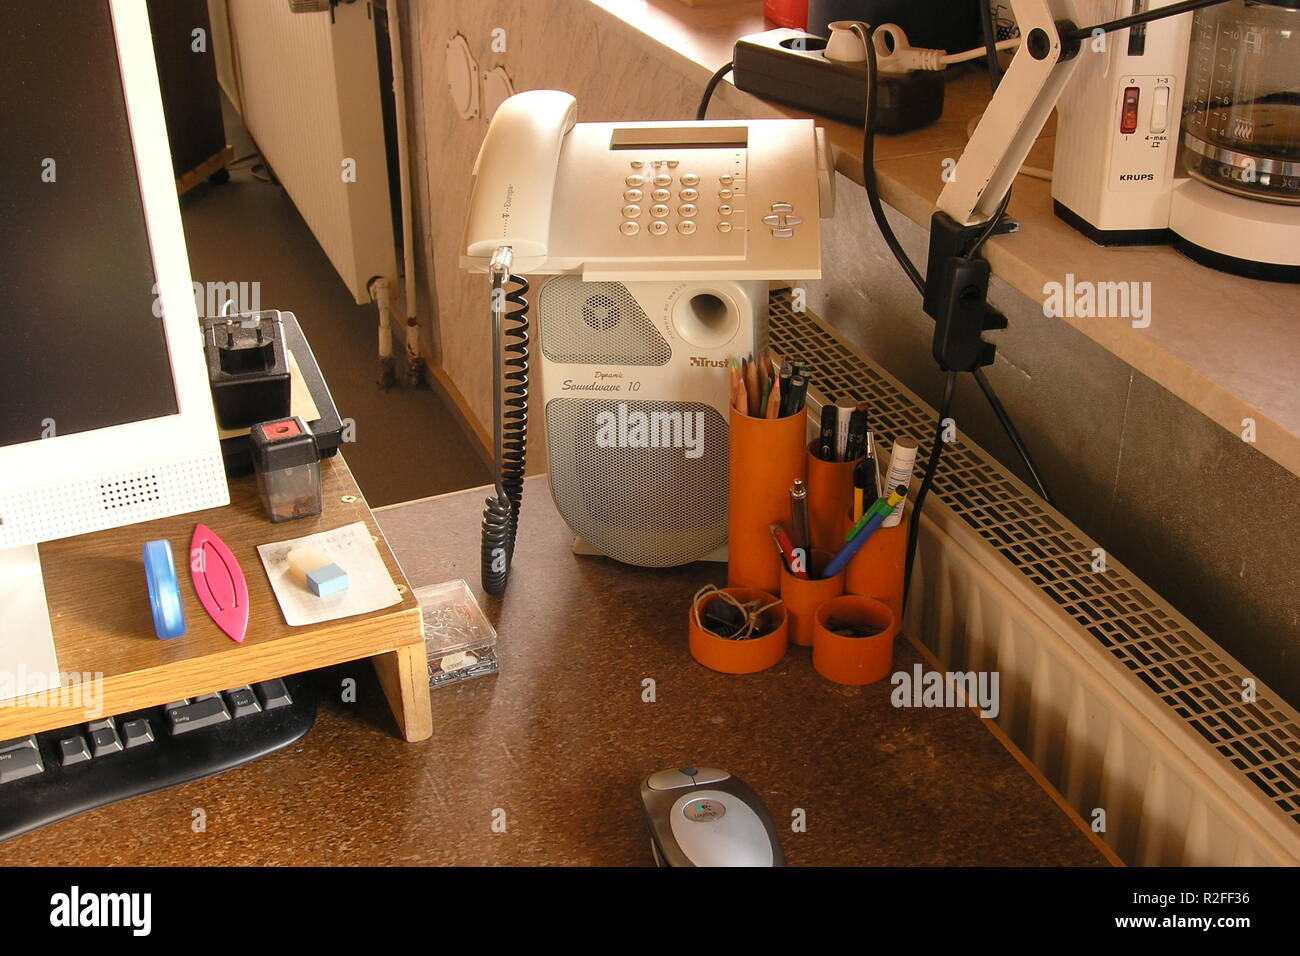 phone place (1) - Stock Image